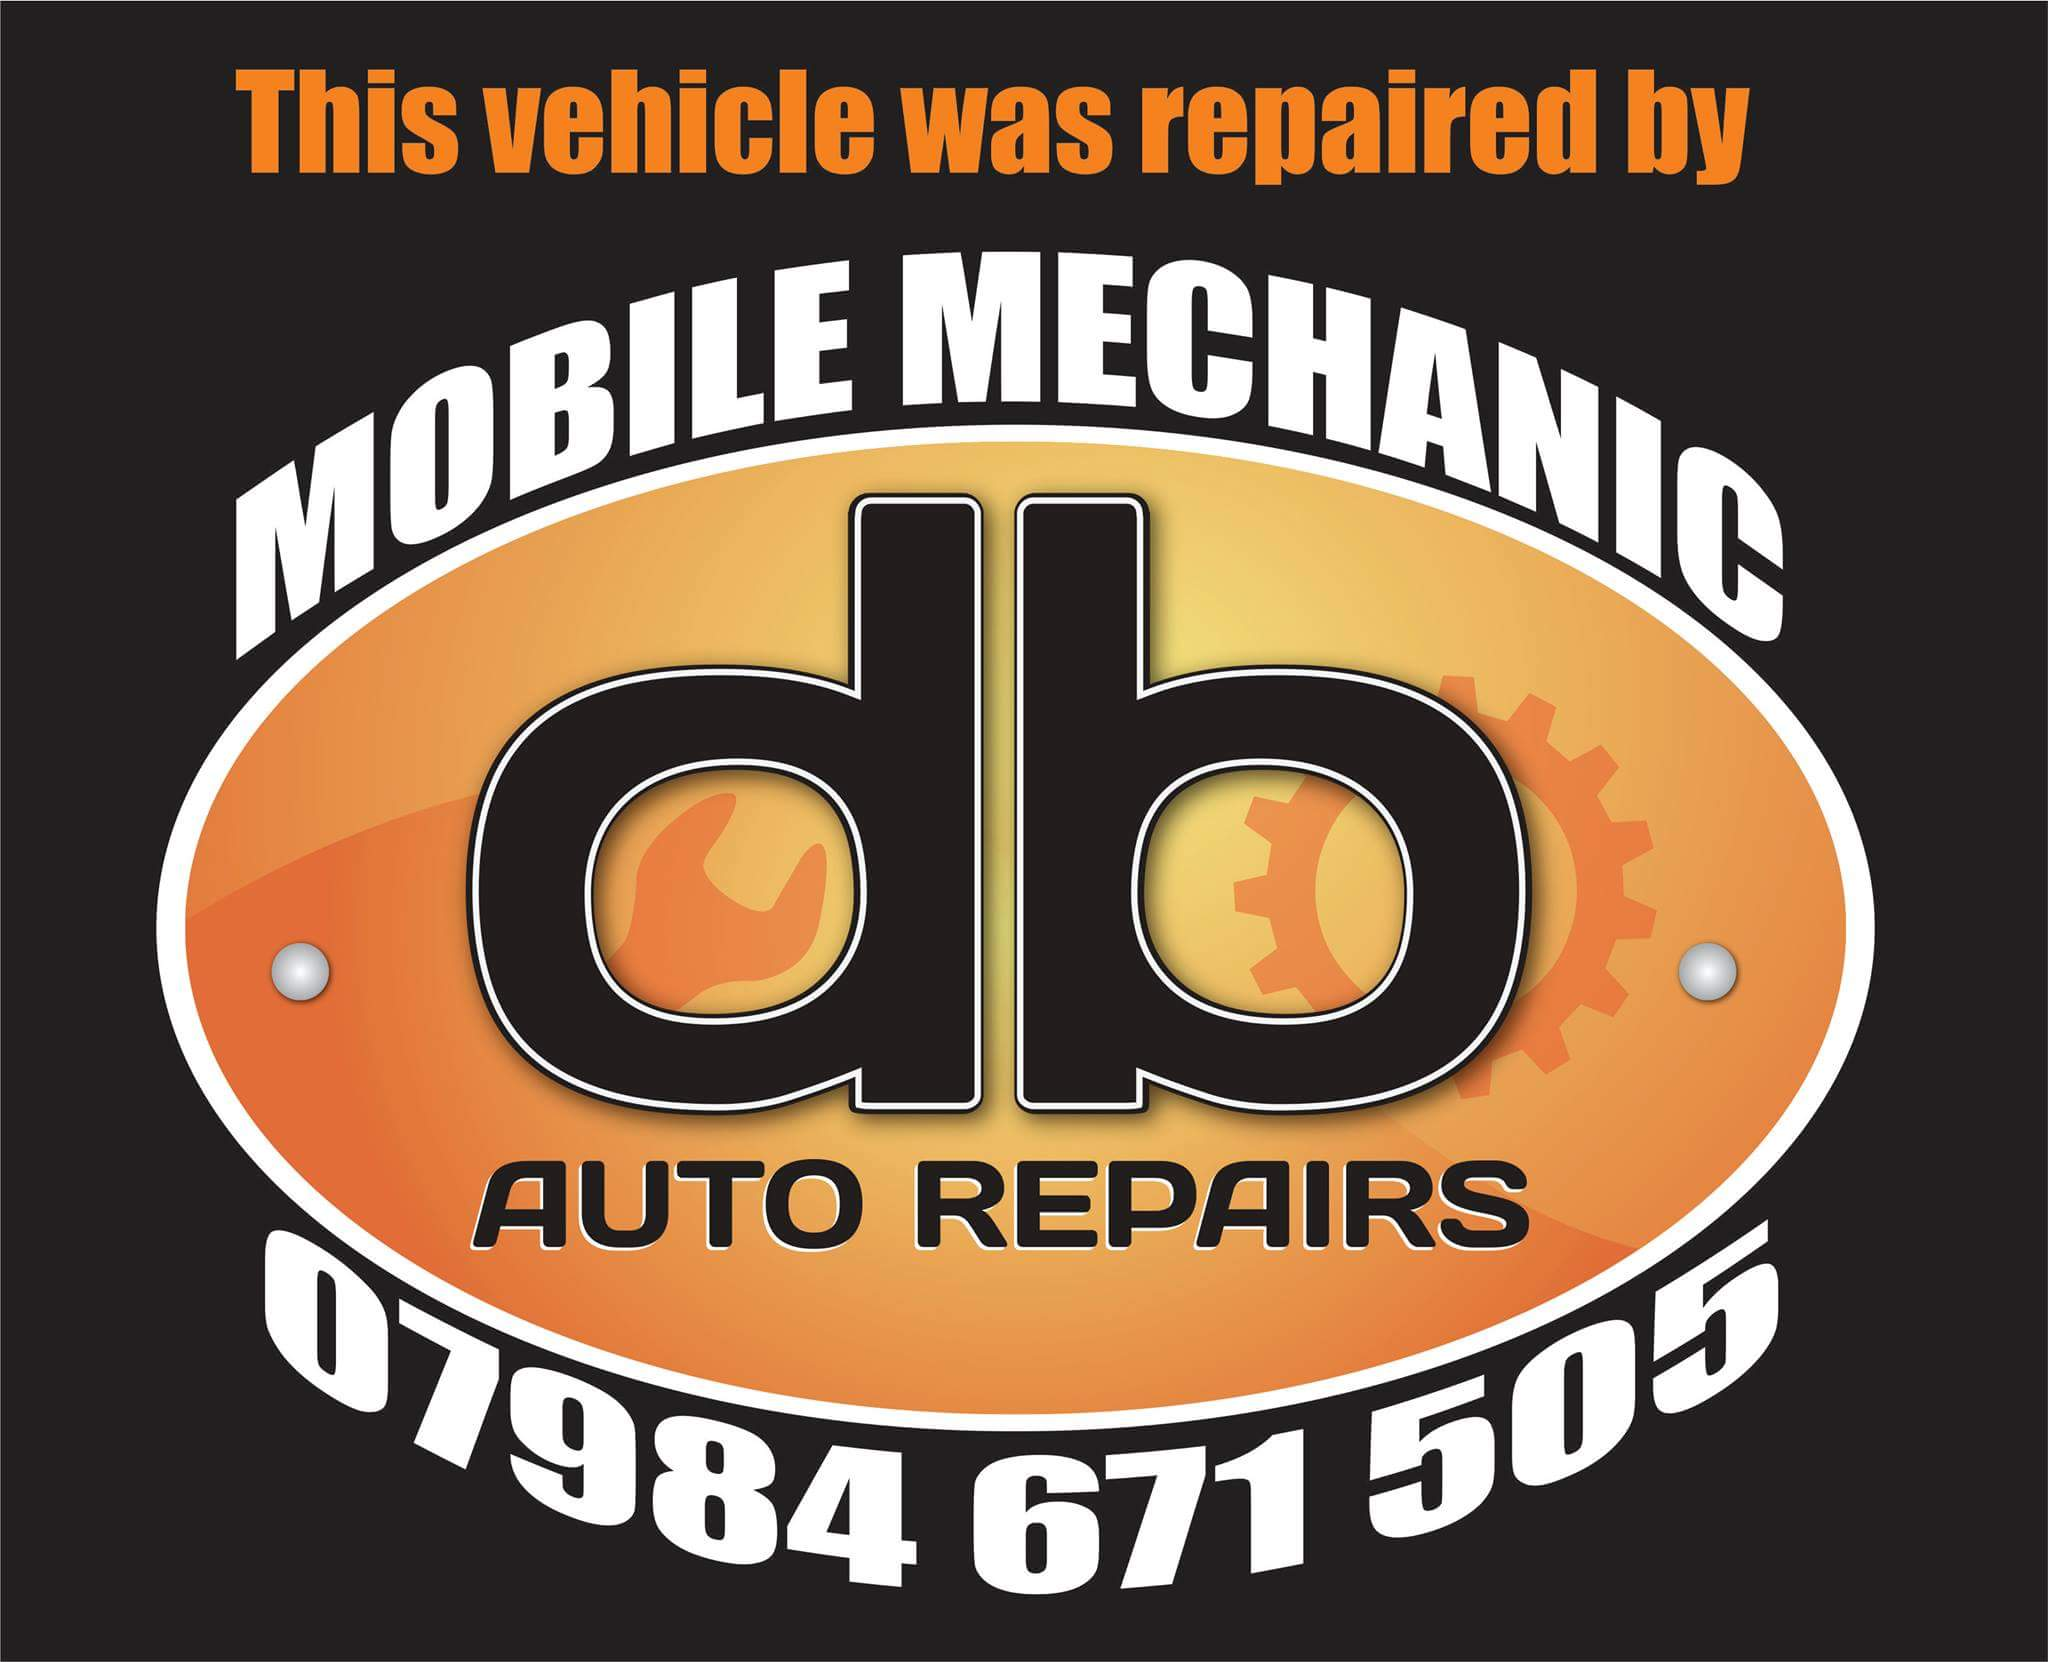 DB Auto Repairs discount sticker design